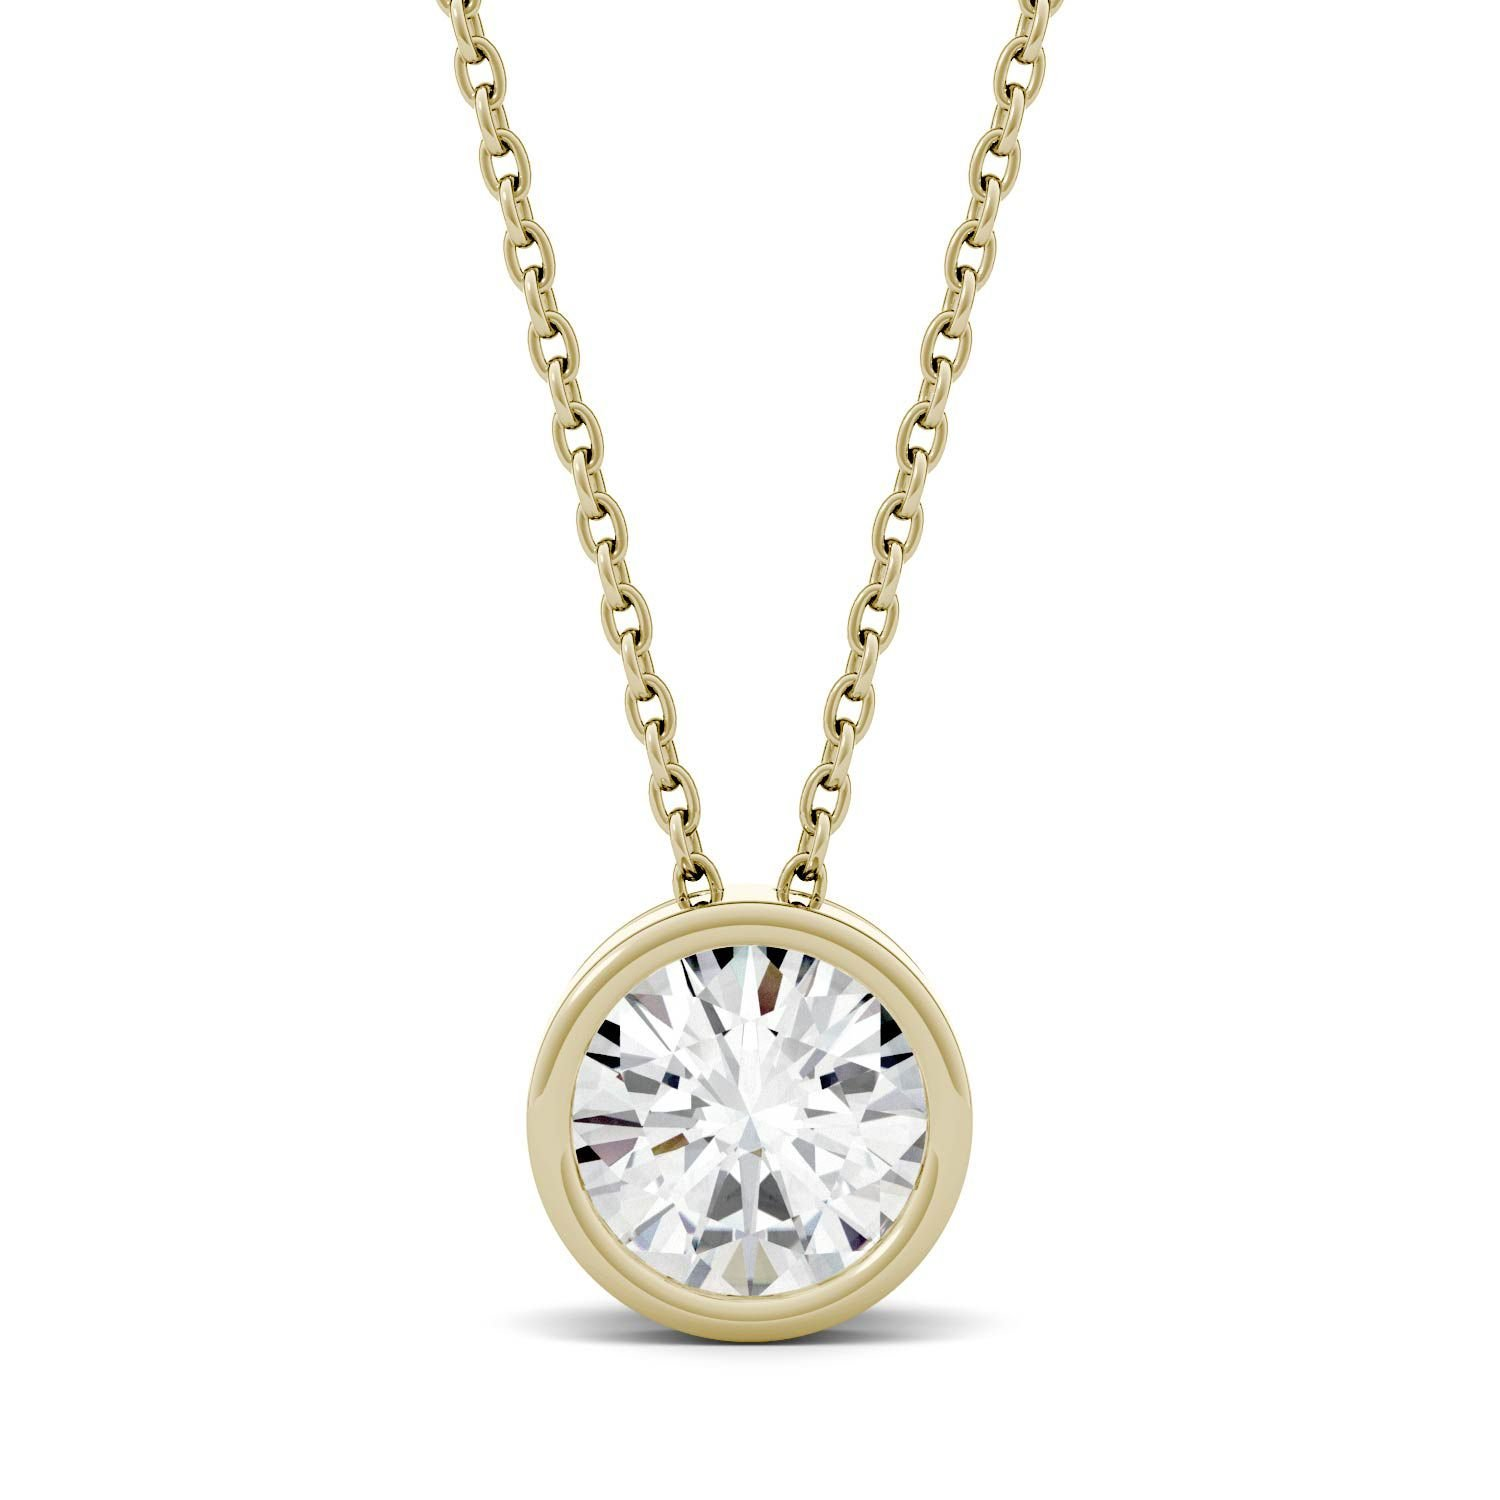 Forever One 14K Yellow Gold Round 8.0mm Moissanite Pendant Necklace, 1.90ct DEW By Charles & Colvard by Charles & Colvard (Image #1)